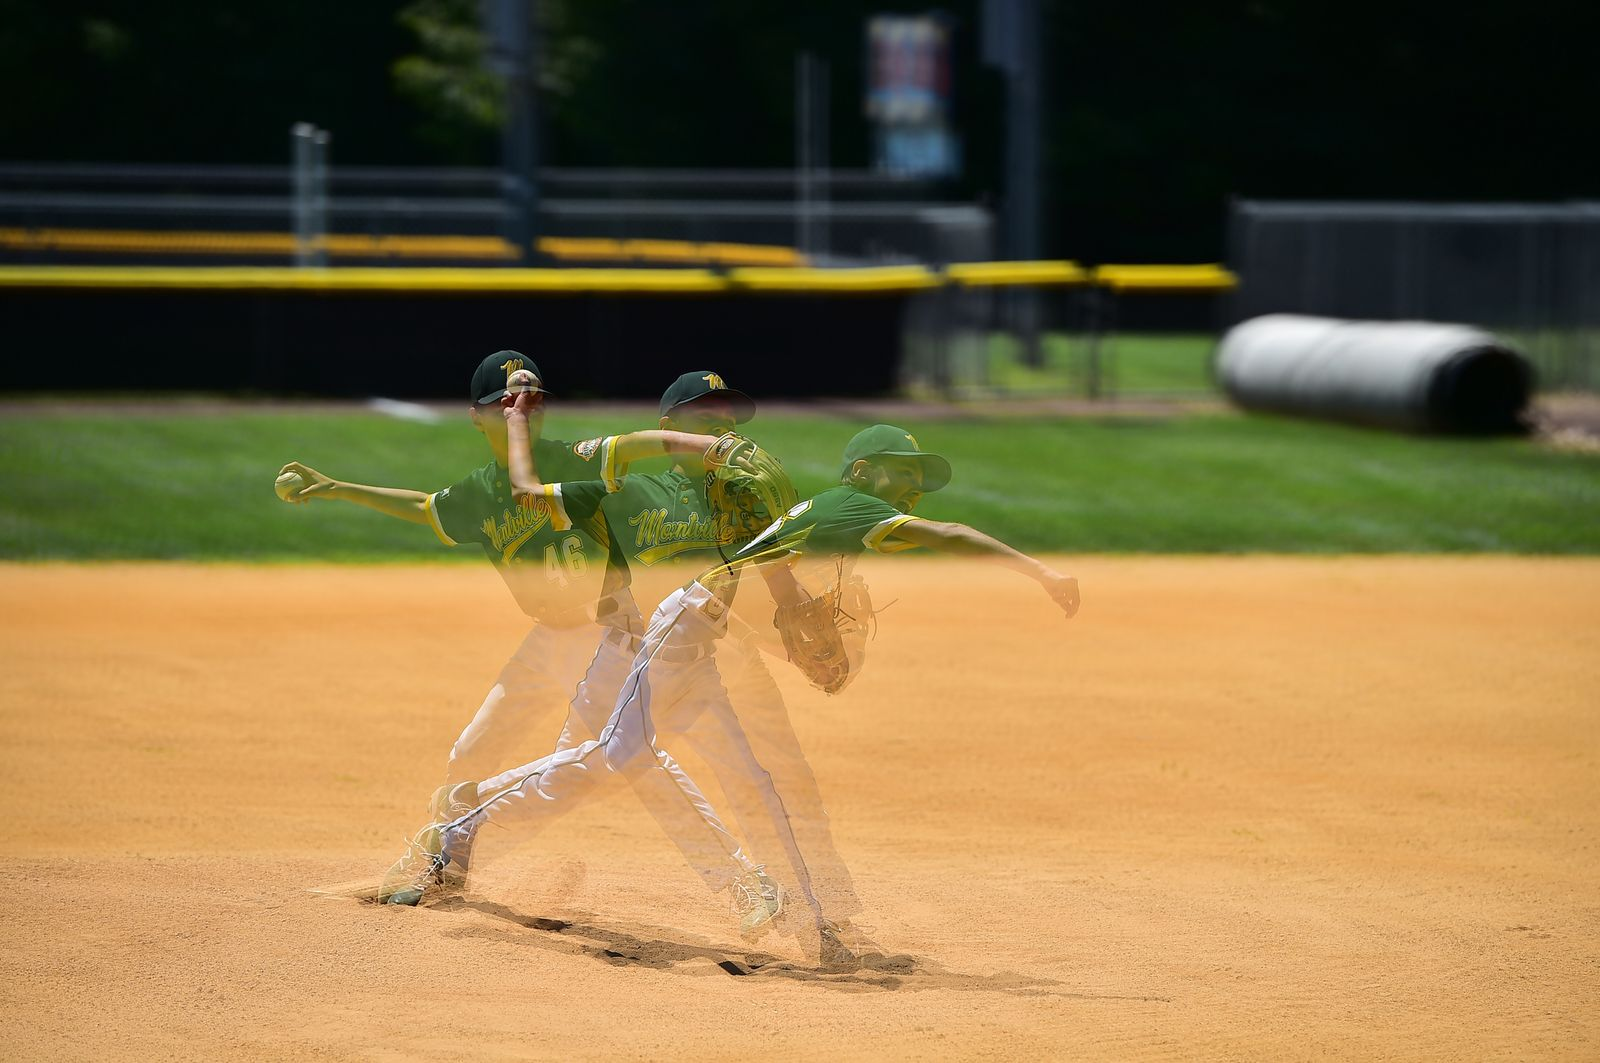 Youth League Baseball Returns To New Jersey As Coronavirus Restrictions Ease